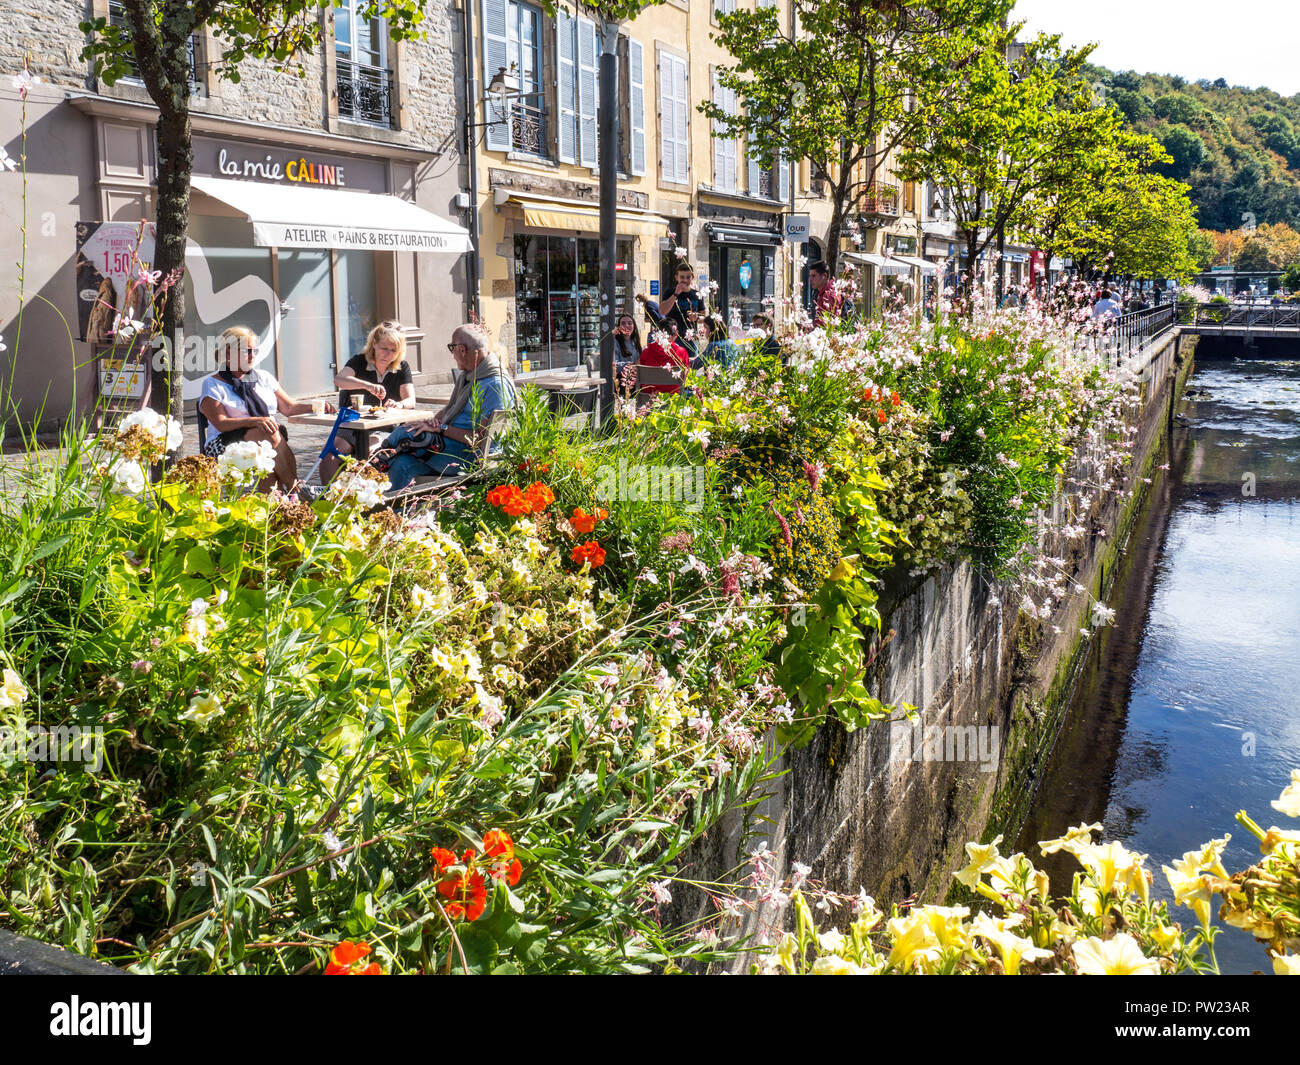 Quimper alfresco café outside the Halles covered organic market, floral sunny summer River Odet Quimper Brittany France - Stock Image